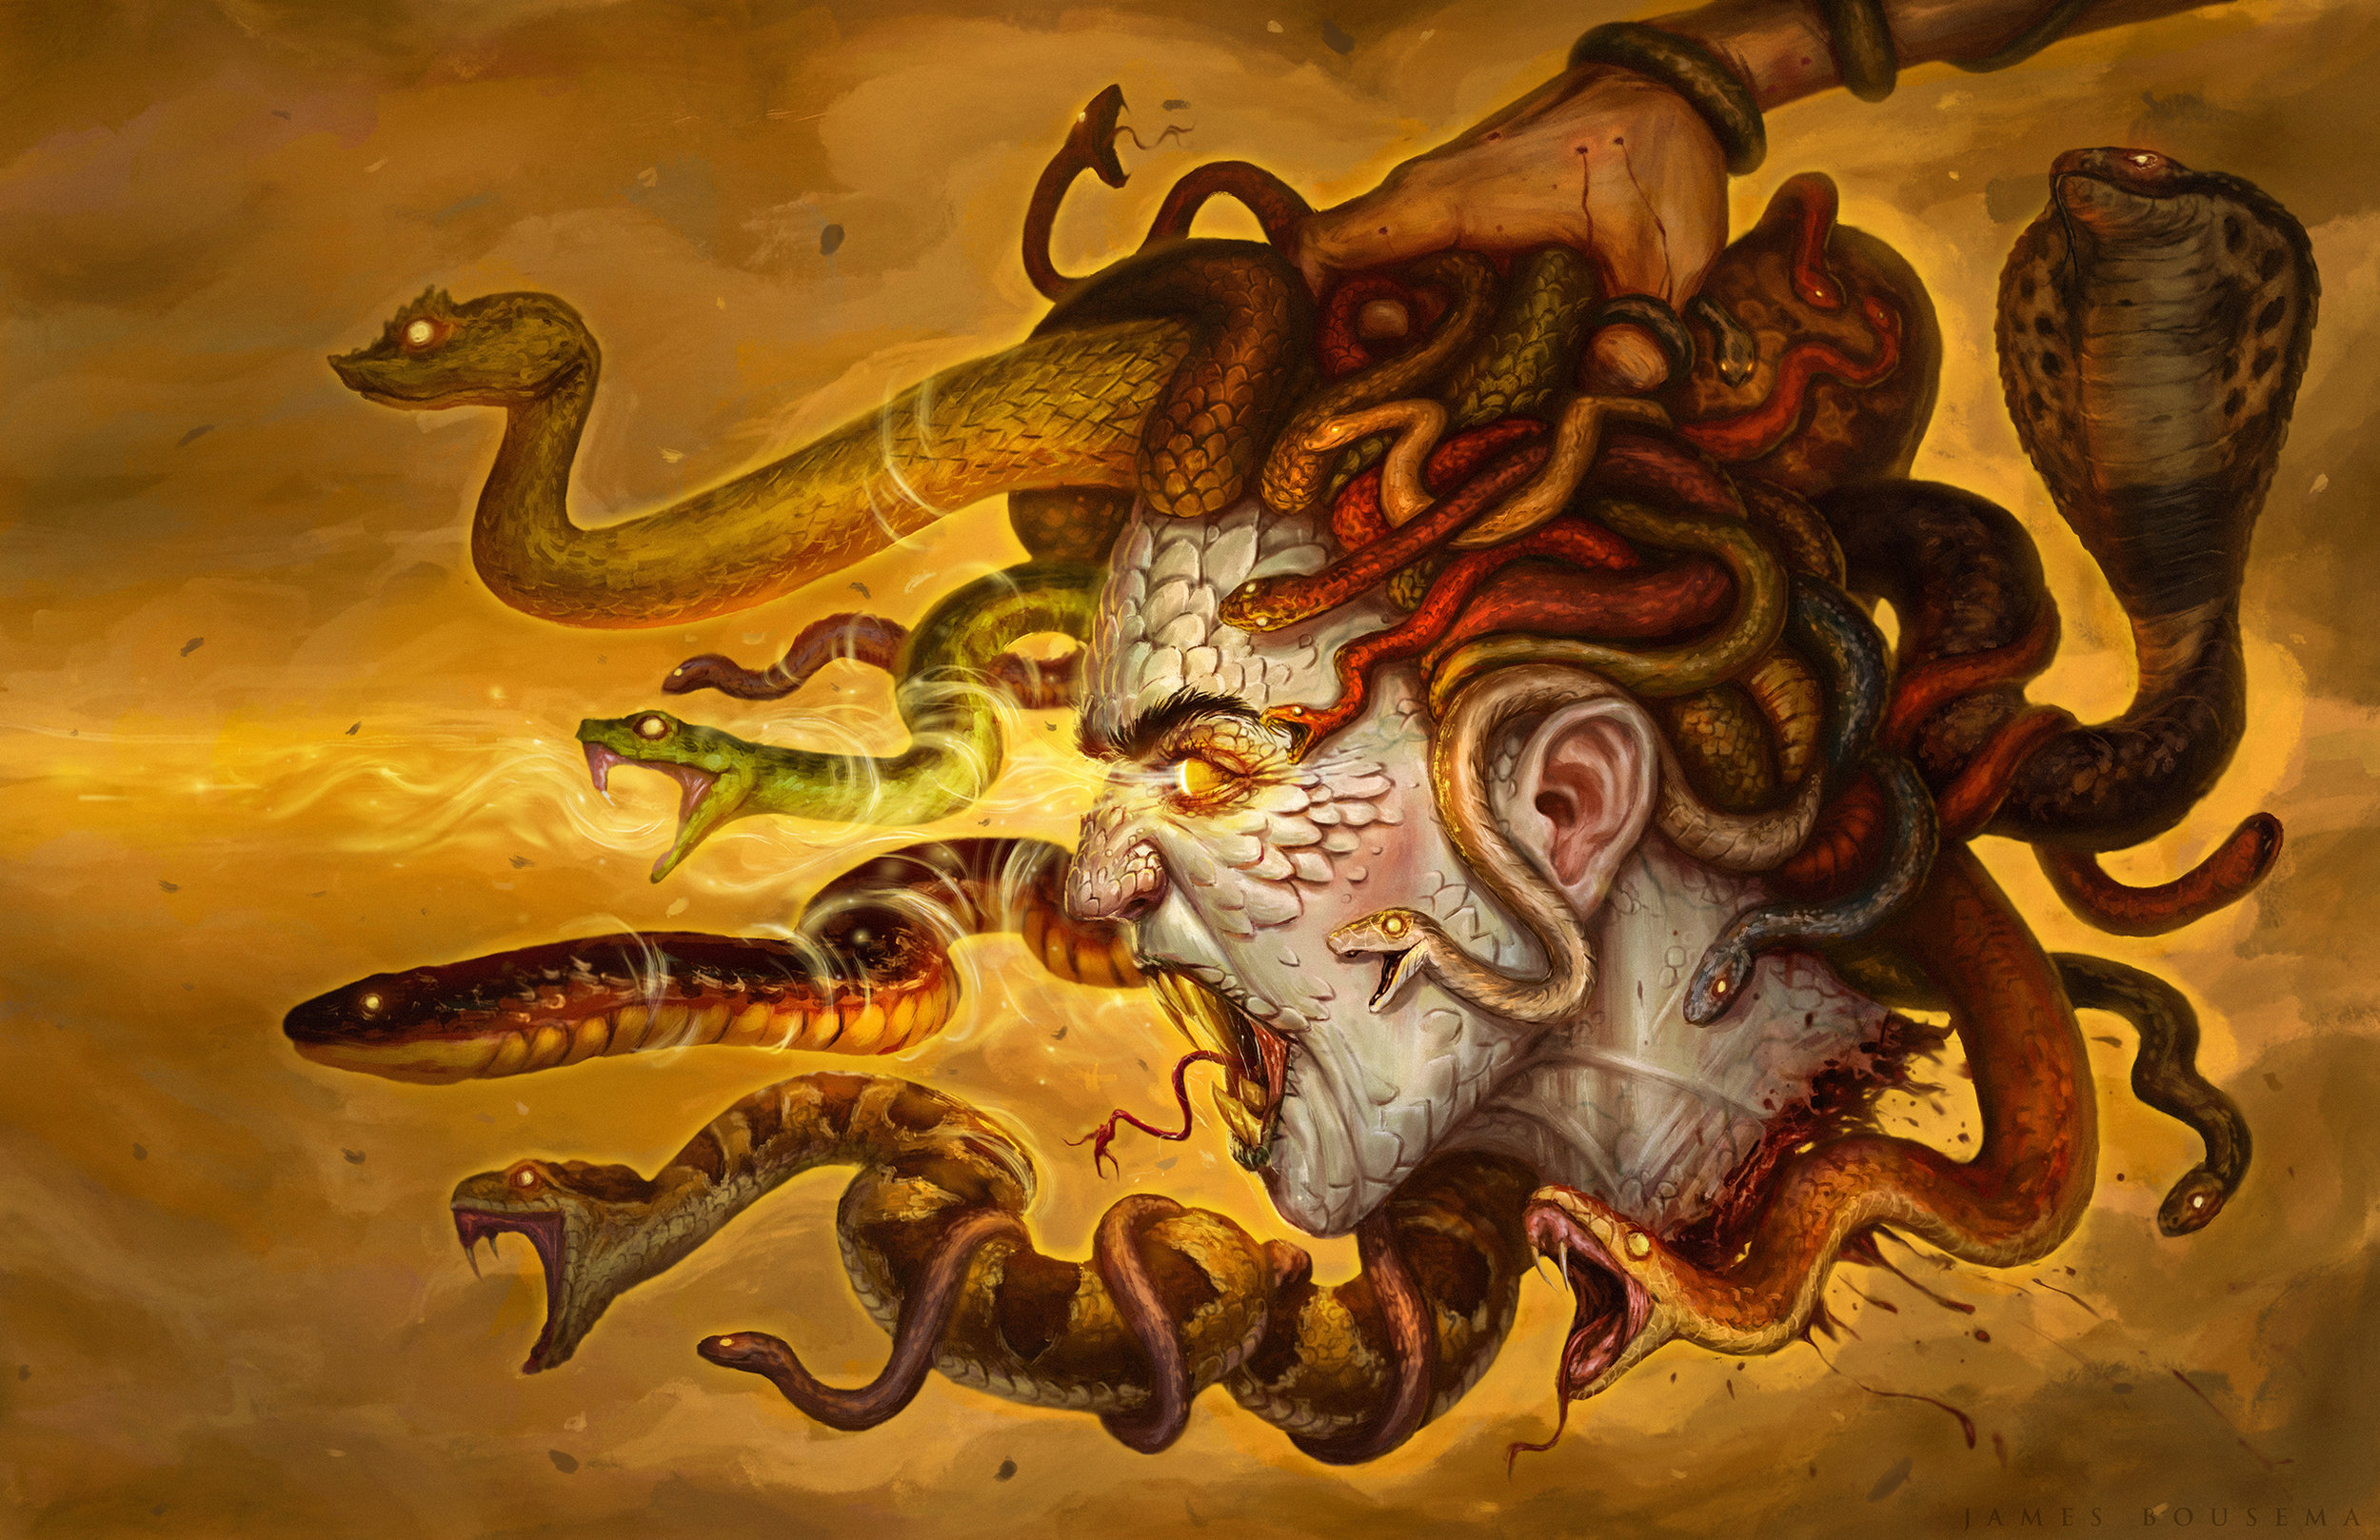 The head of Medusa imagined with various types of poisonous/venemous snakes Done in Photoshop CS6